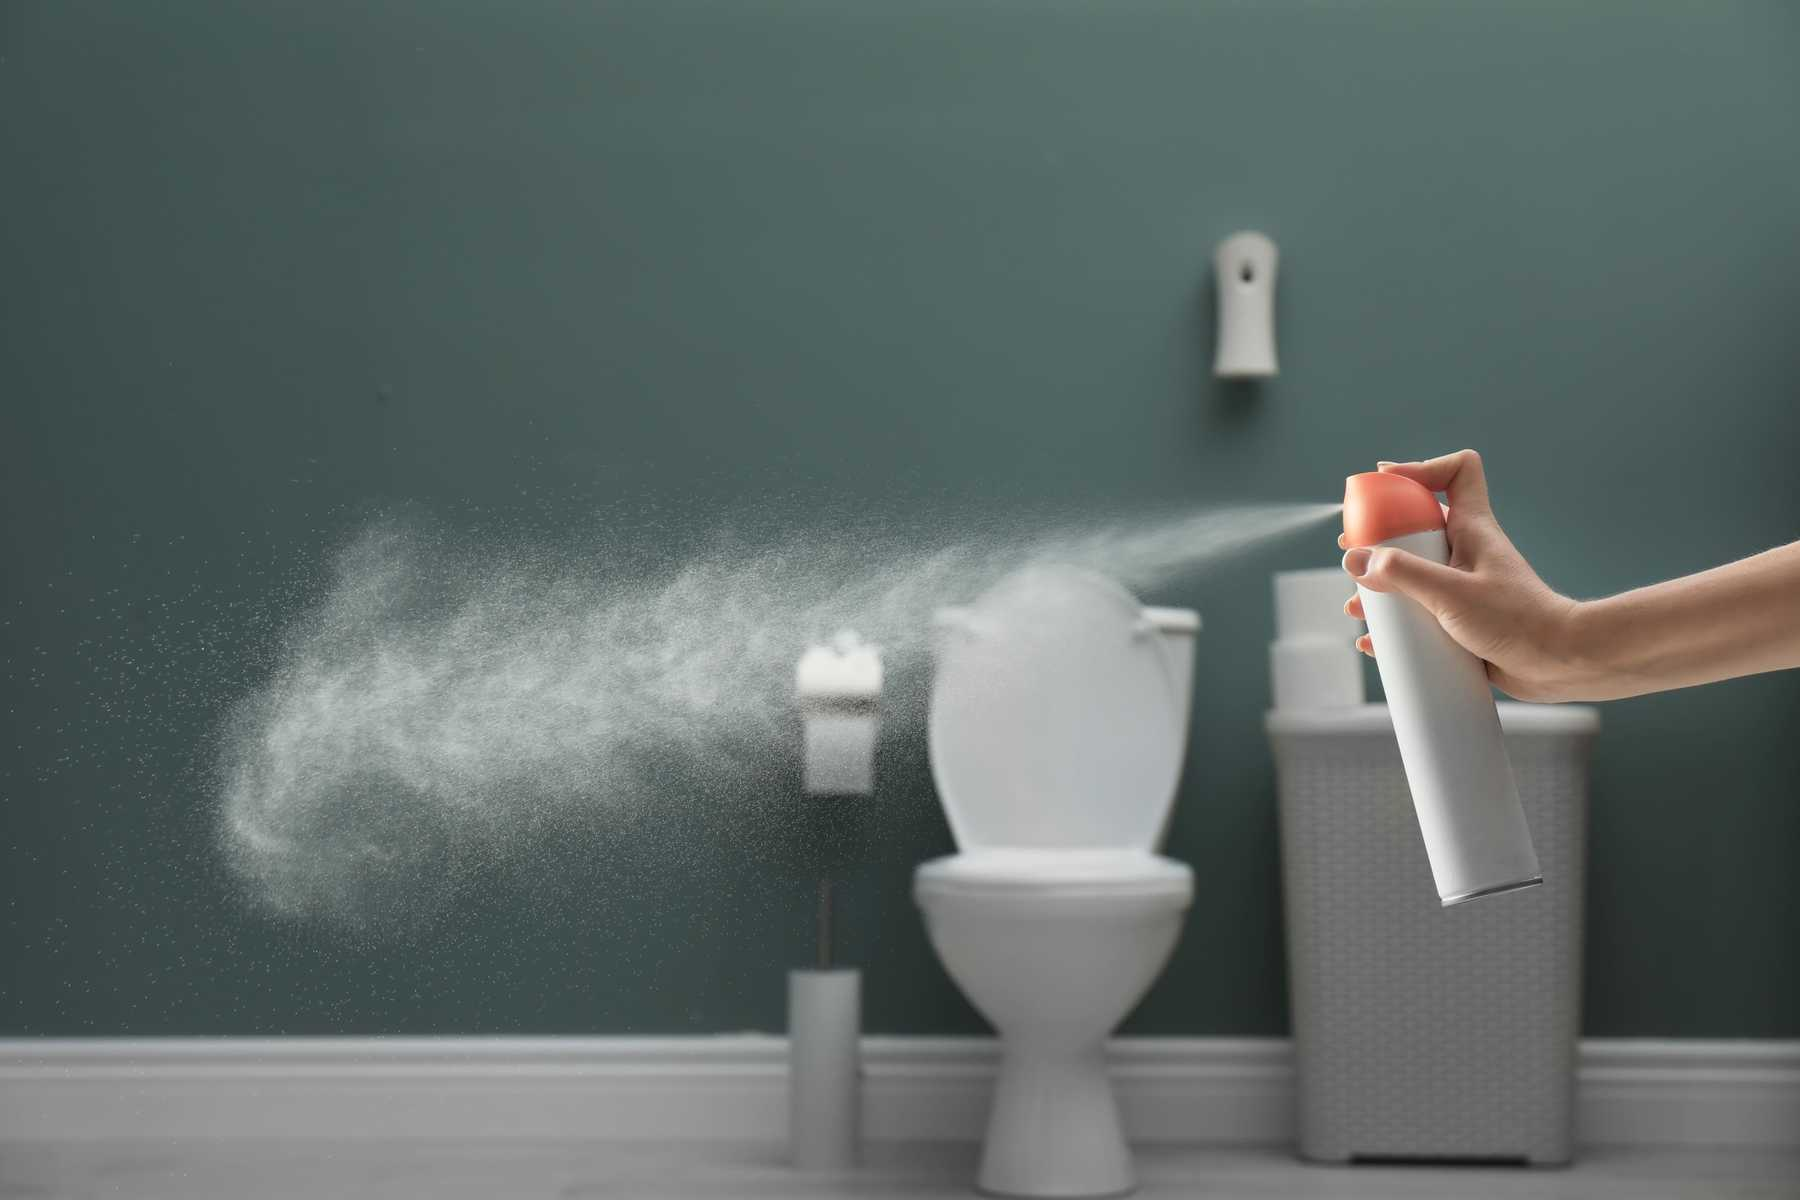 Natural ways of keeping the toilet smelling fresh